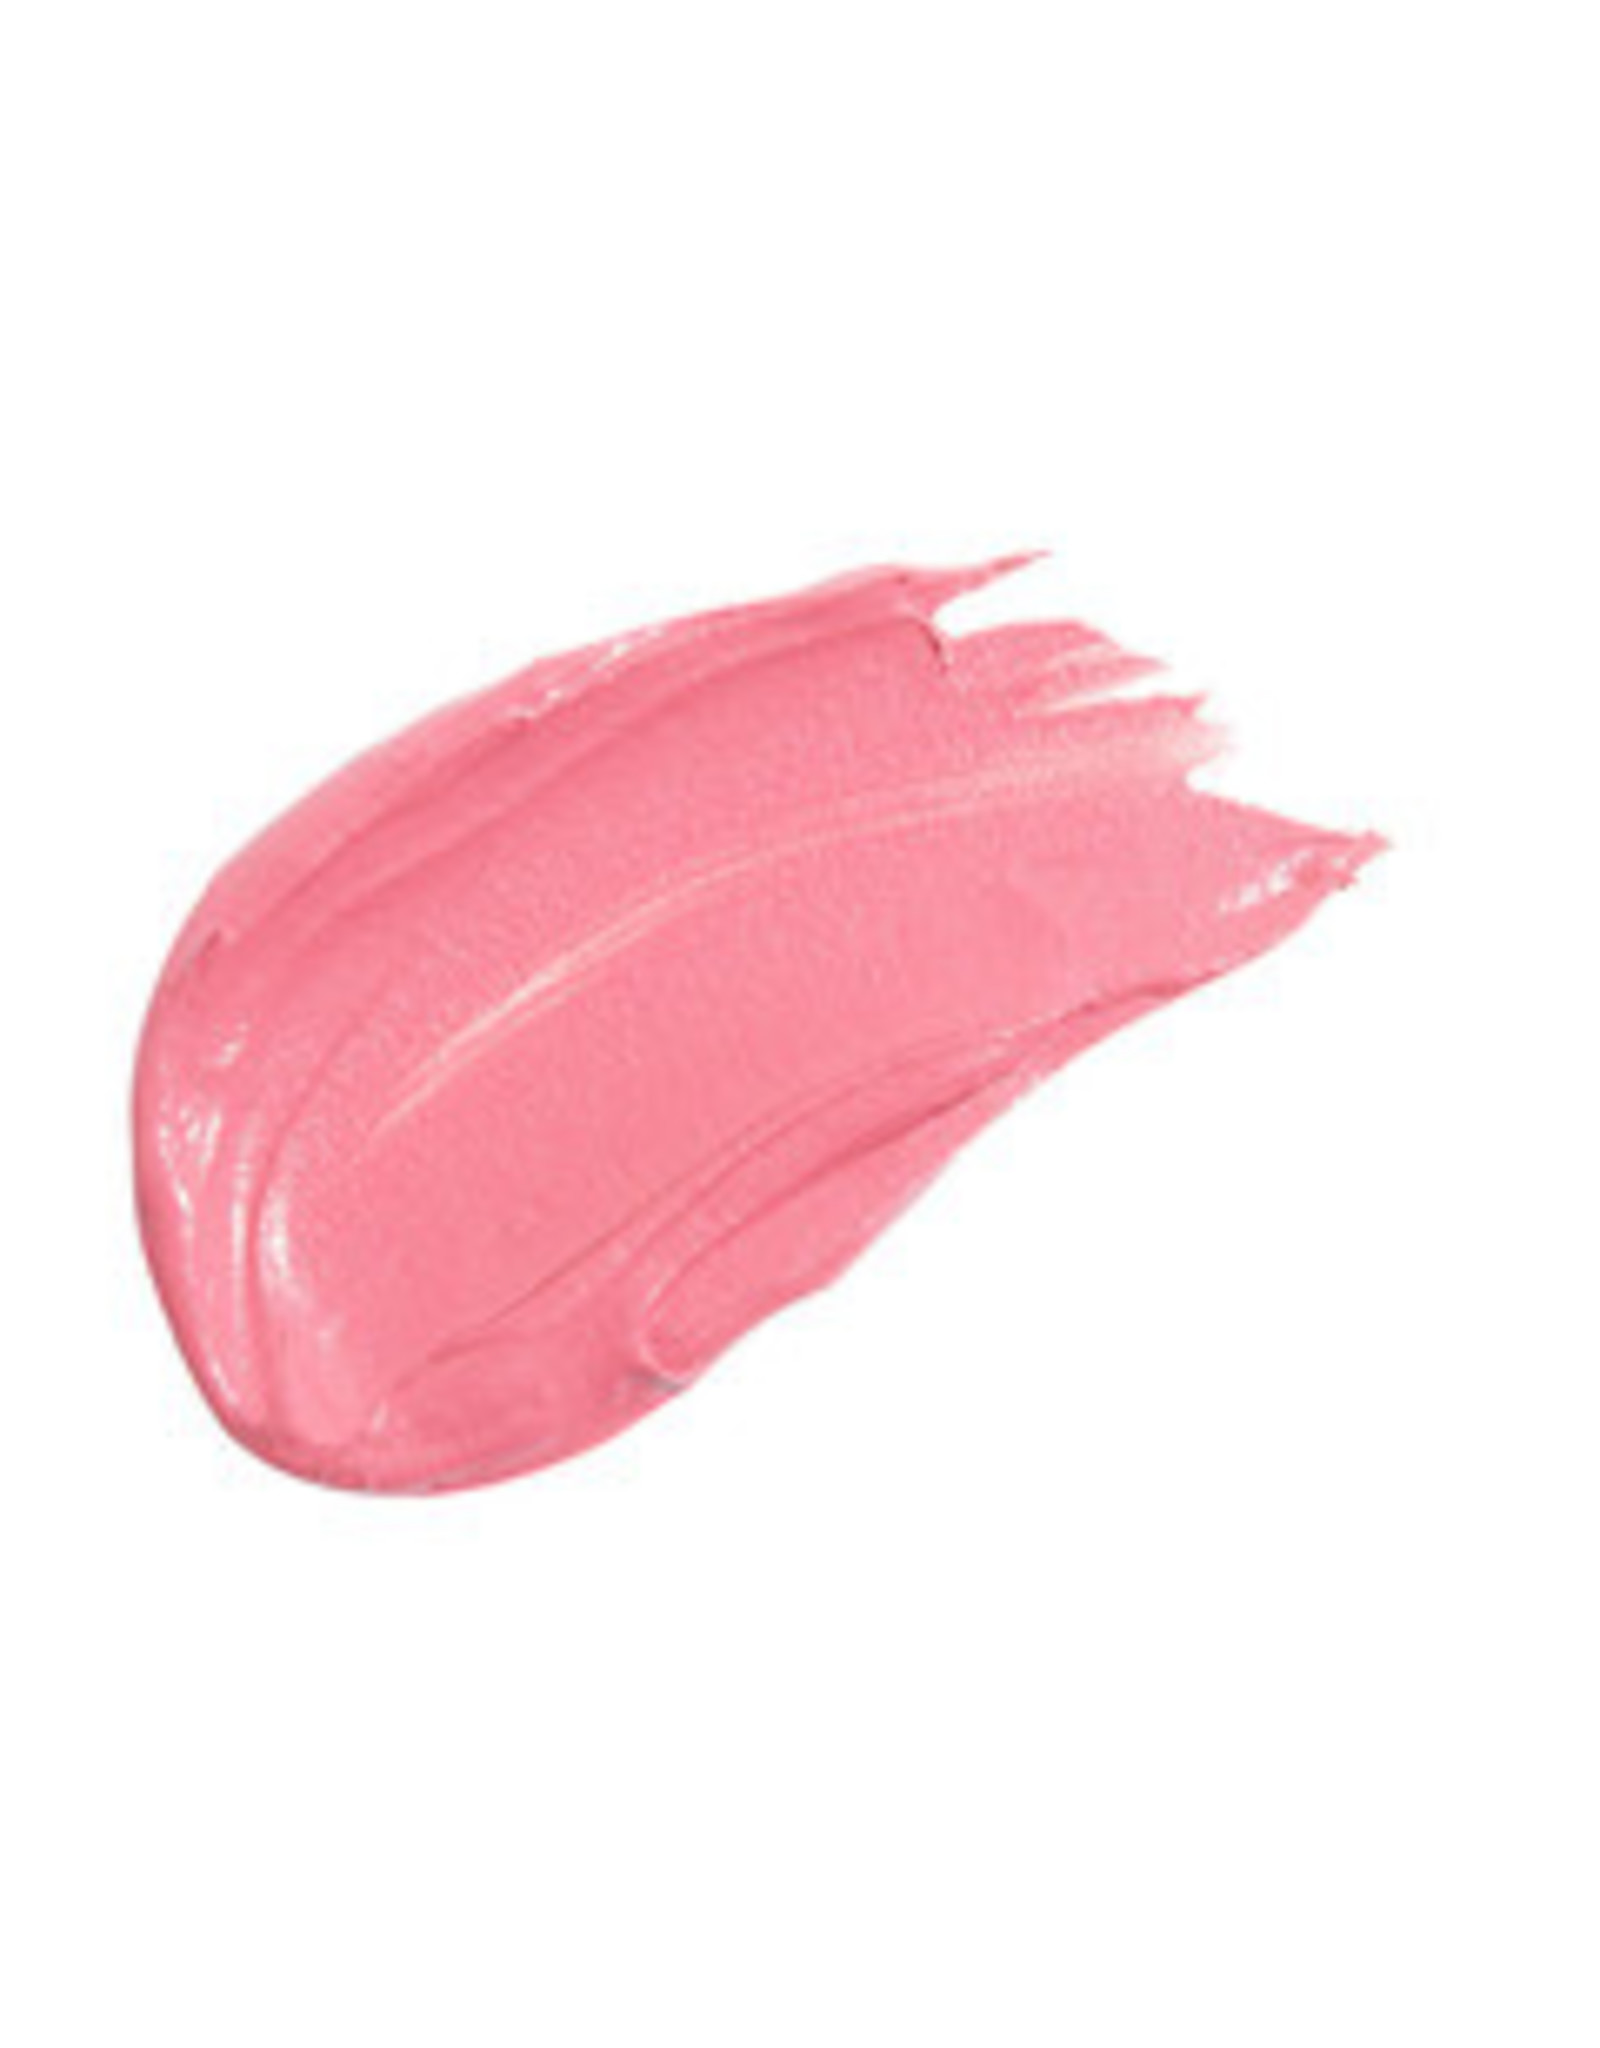 Tata Harper Tata Harper Lip And Cheek Tint (Color: Very Charming)